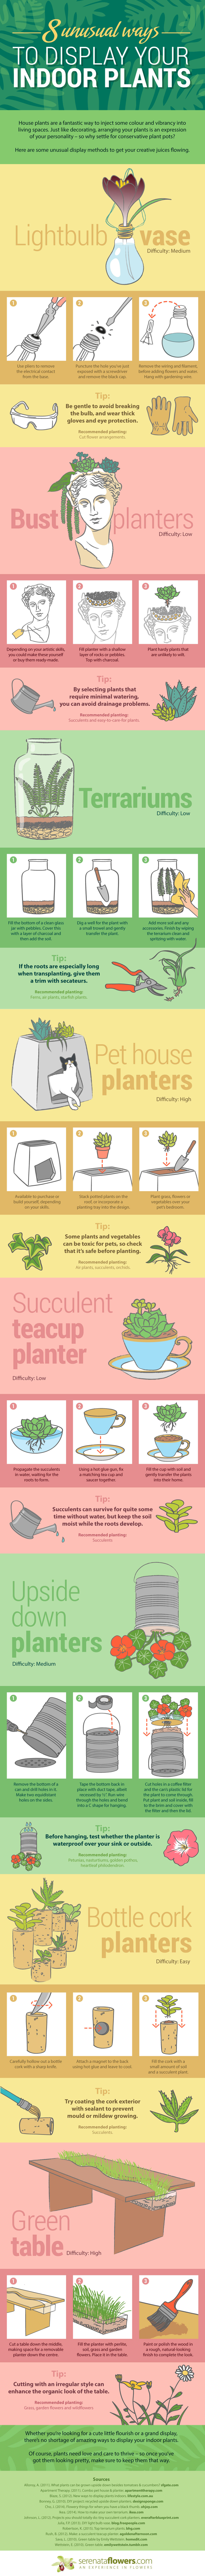 Indoor plants infographic